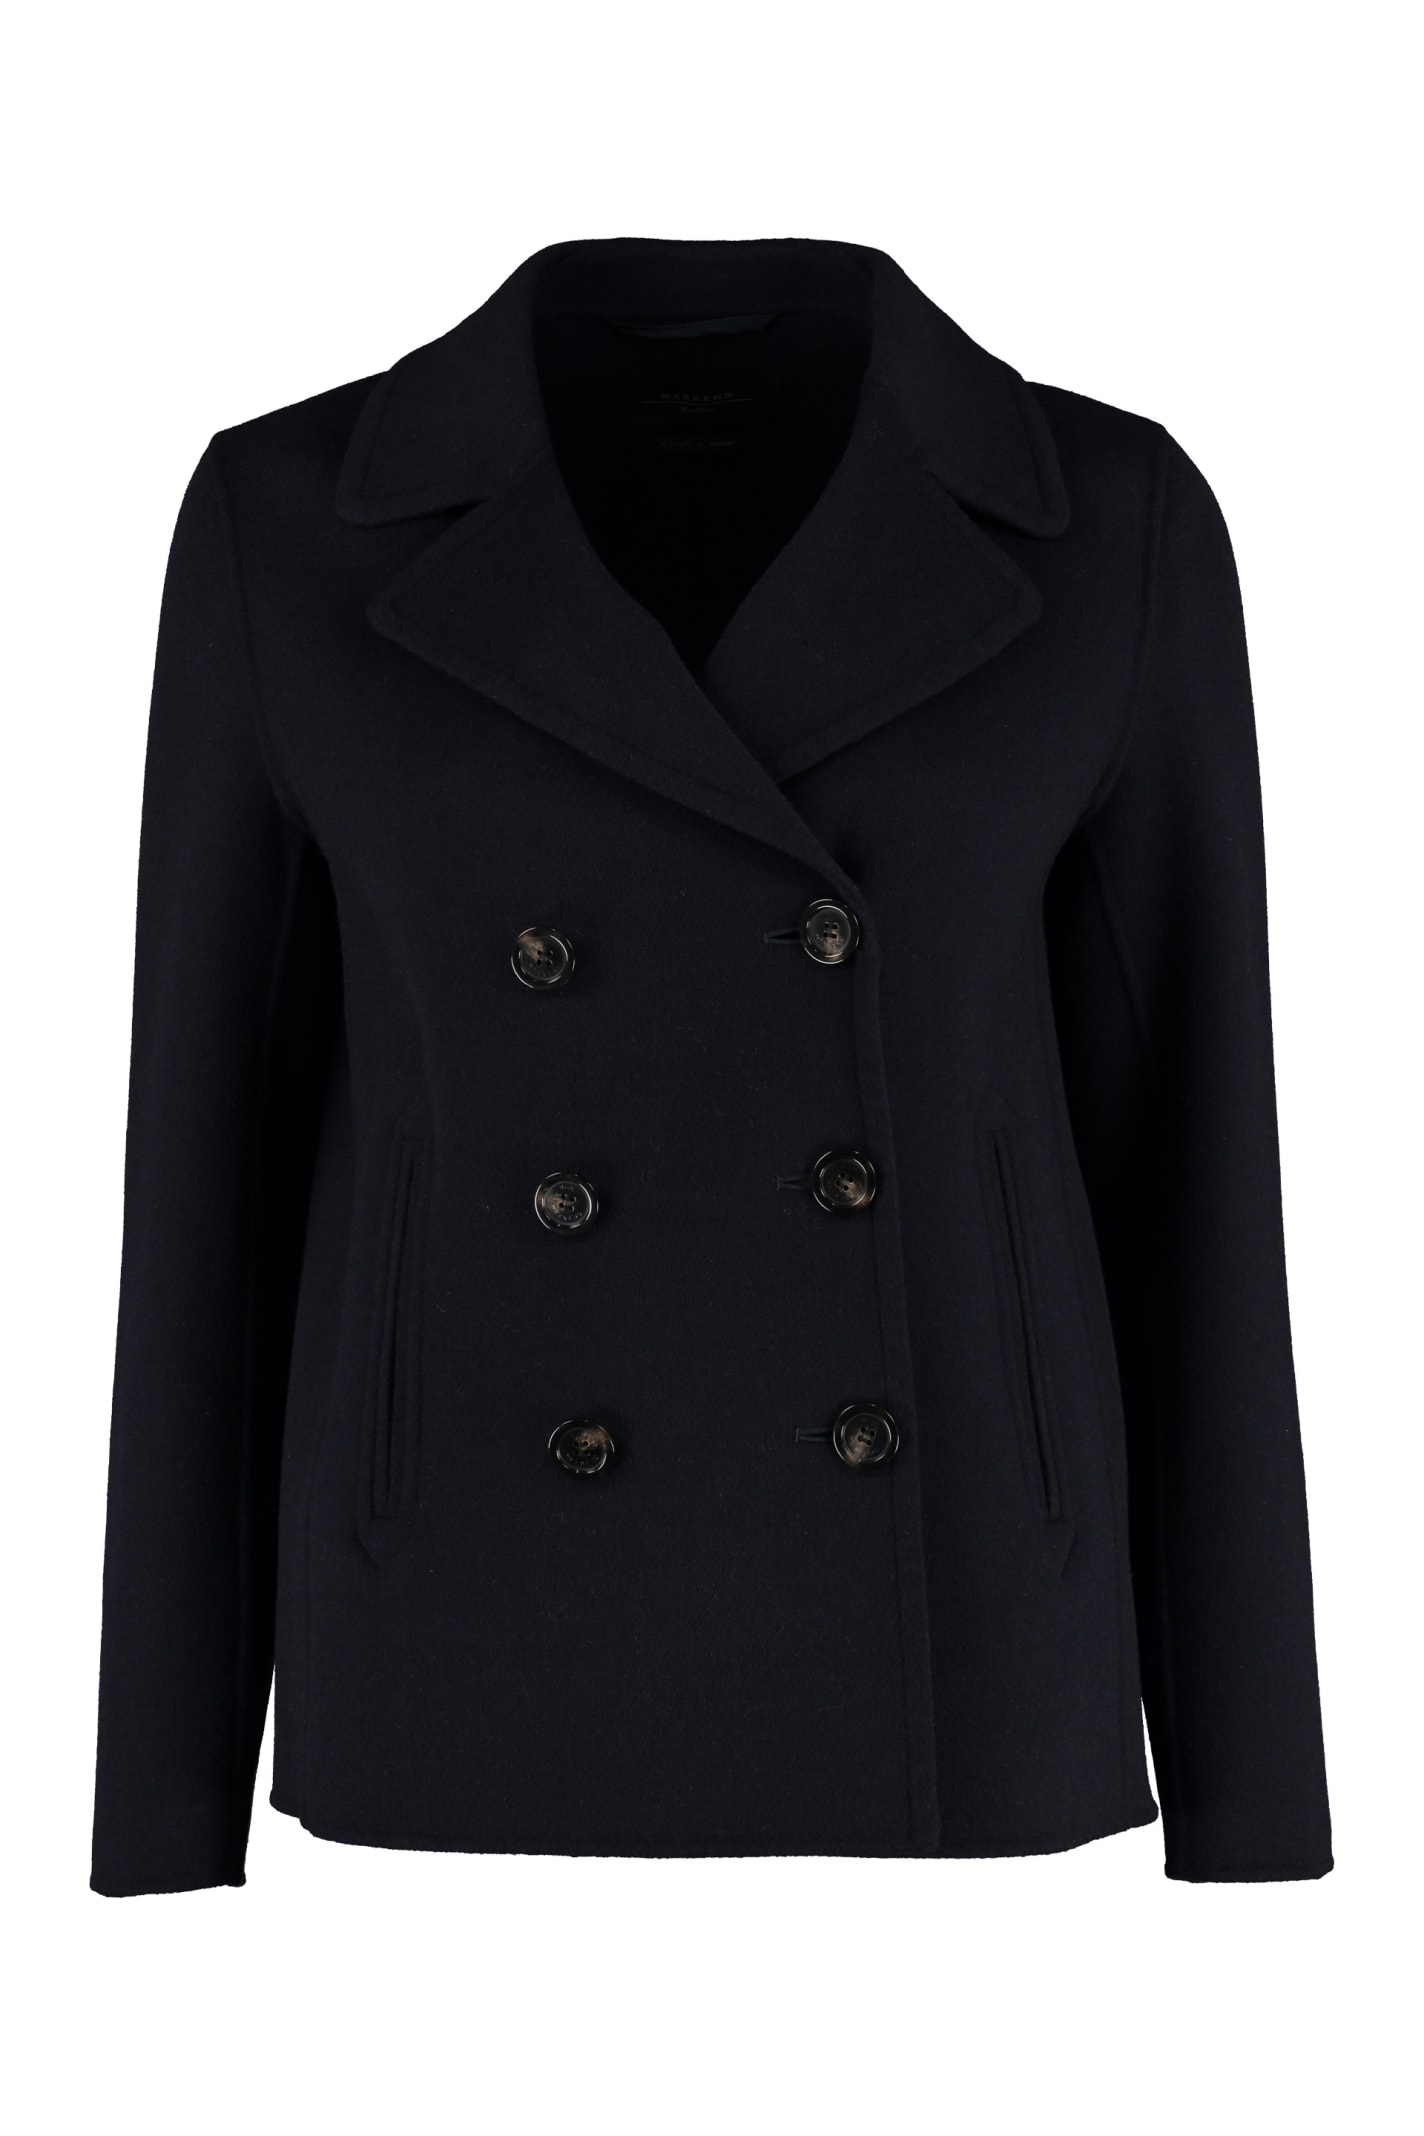 Weekend Max Mara Pino Double-breasted Coat